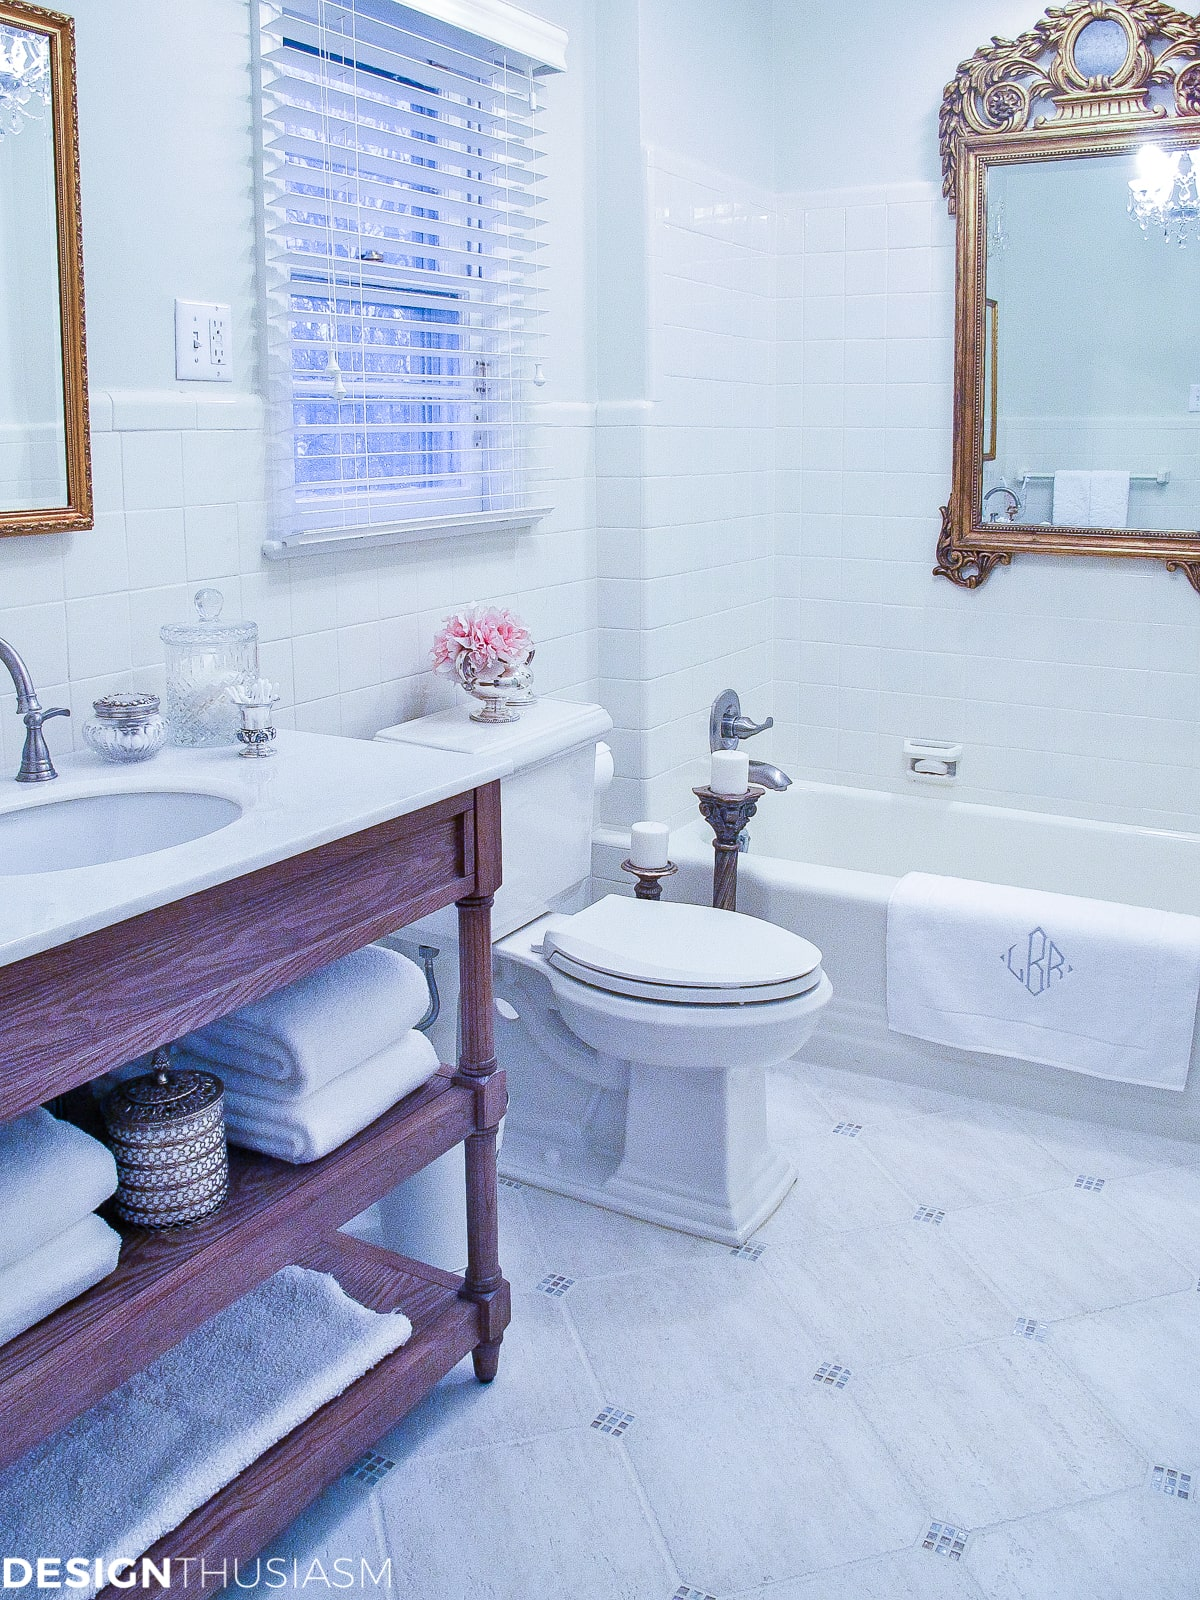 Bathroom Ideas on a Budget | Creamy White Painted Tile - designthusiasm.com